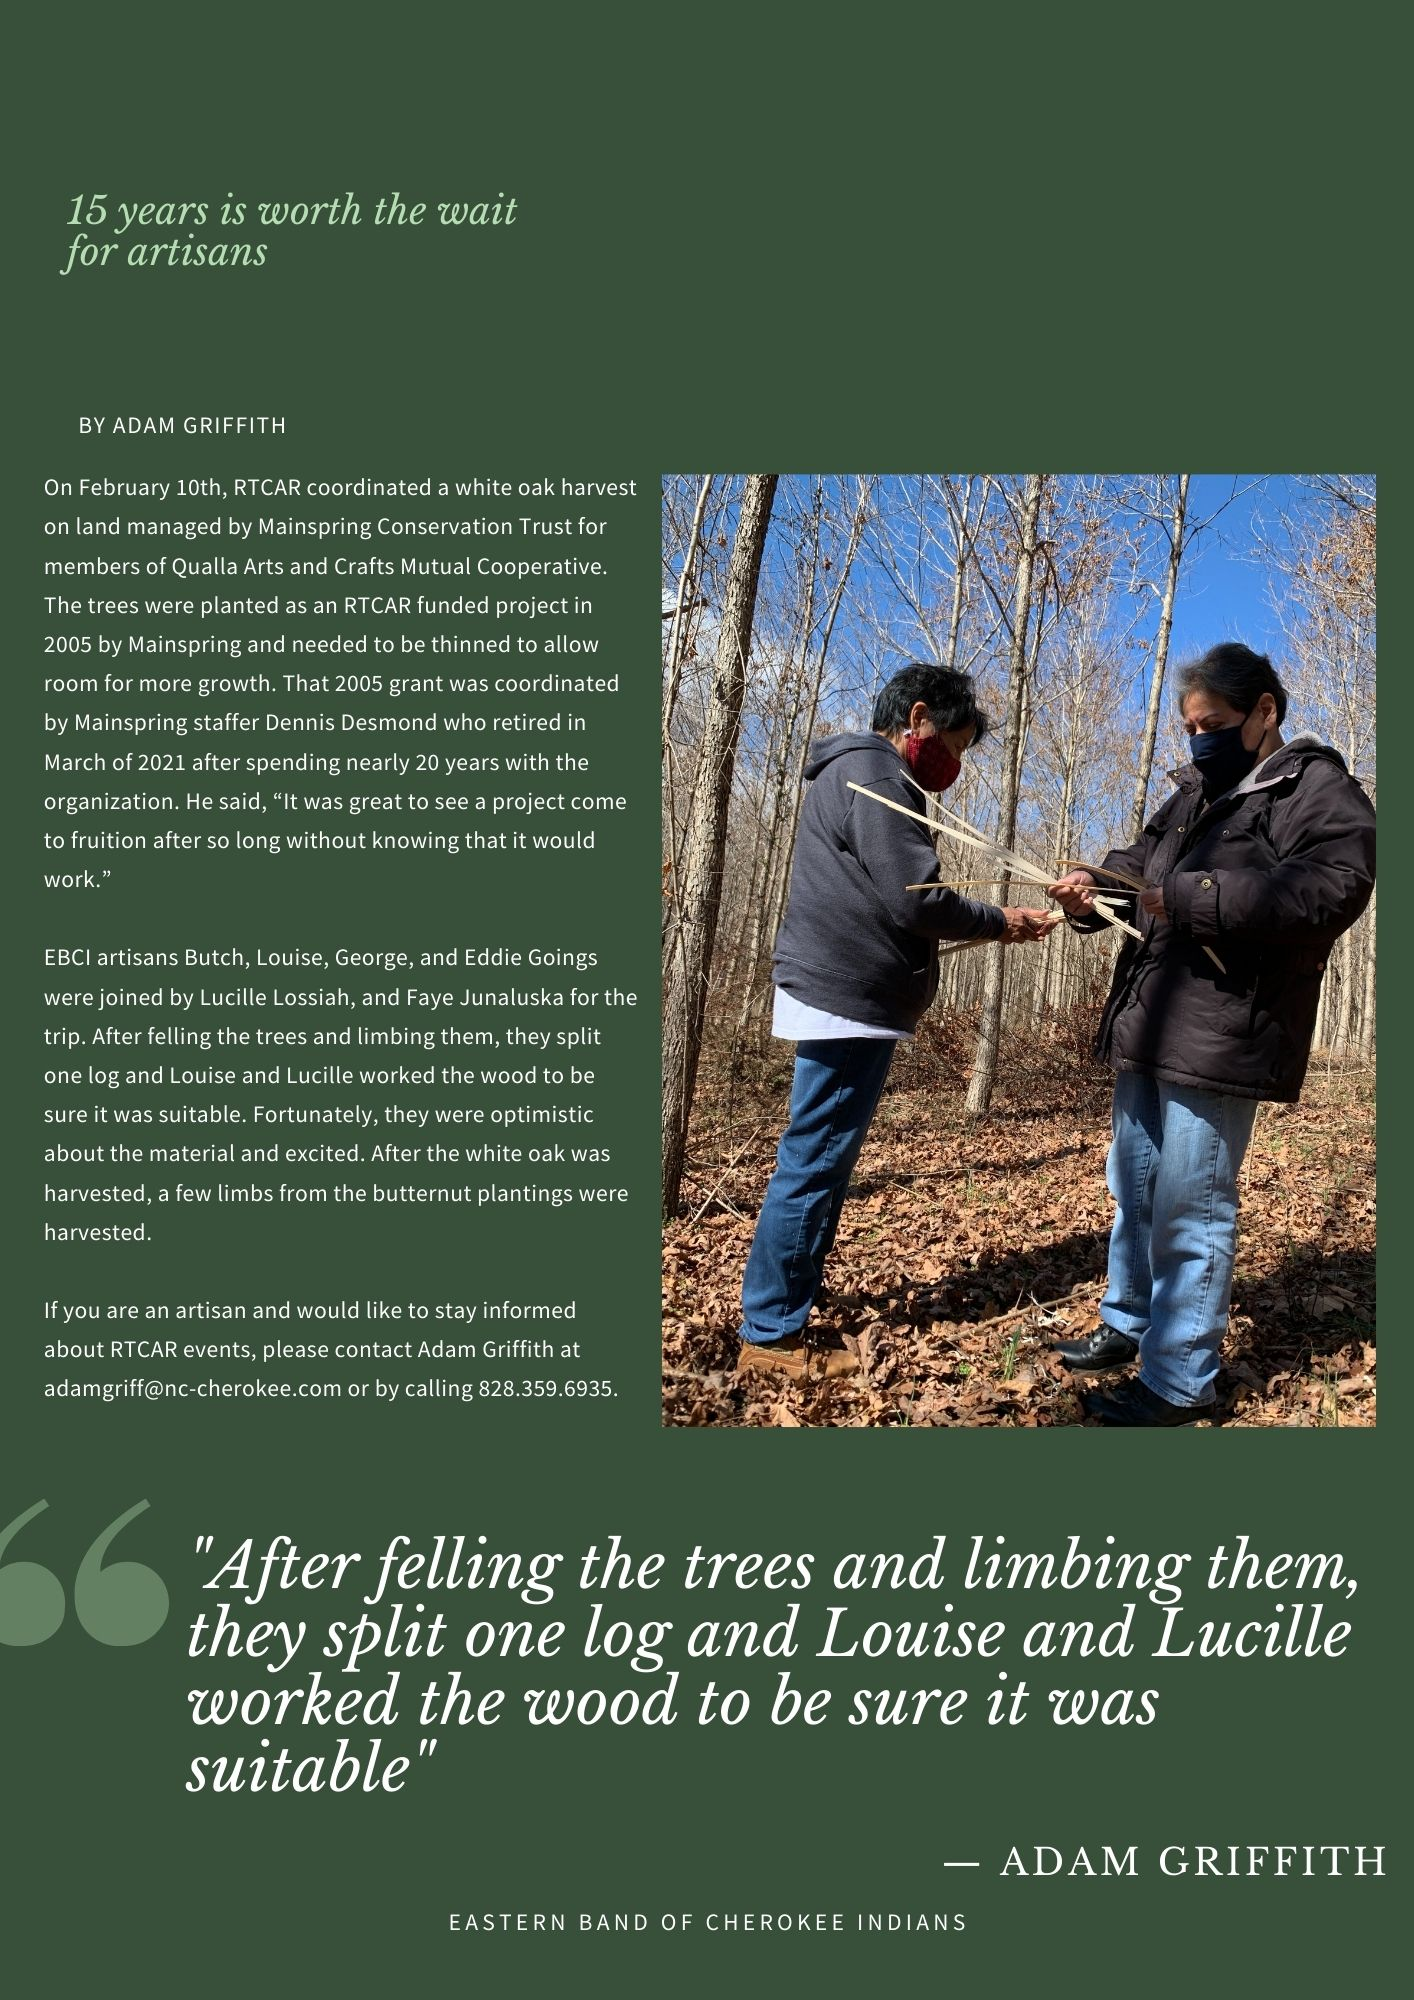 """On February 10th, RTCAR coordinated a white oak harvest on land managed by Mainspring Conservation Trust for members of Qualla Arts and Crafts Mutual Cooperative. The trees were planted as an RTCAR funded project in 2005 by Mainspring and needed to be thinned to allow room for more growth. That 2005 grant was coordinated by Mainspring staffer Dennis Desmond who retired in March of 2021 after spending nearly 20 years with the organization. He said, """"It was great to see a project come to fruition after so long without knowing that it would work."""" EBCI artisans Butch, Louise, George, and Eddie Goings were joined by Lucille Lossiah, and Faye Junaluska for the trip. After felling the trees and limbing them, they split one log and Louise and Lucille worked the wood to be sure it was suitable. Fortunately, they were optimistic about the material and excited. After the white oak was harvested, a few limbs from the butternut plantings were harvested. If you are an artisan and would like to stay informed about RTCAR events, please contact Adam Griffith at adamgriff@nc-cherokee.com or by calling 828.359.6935."""